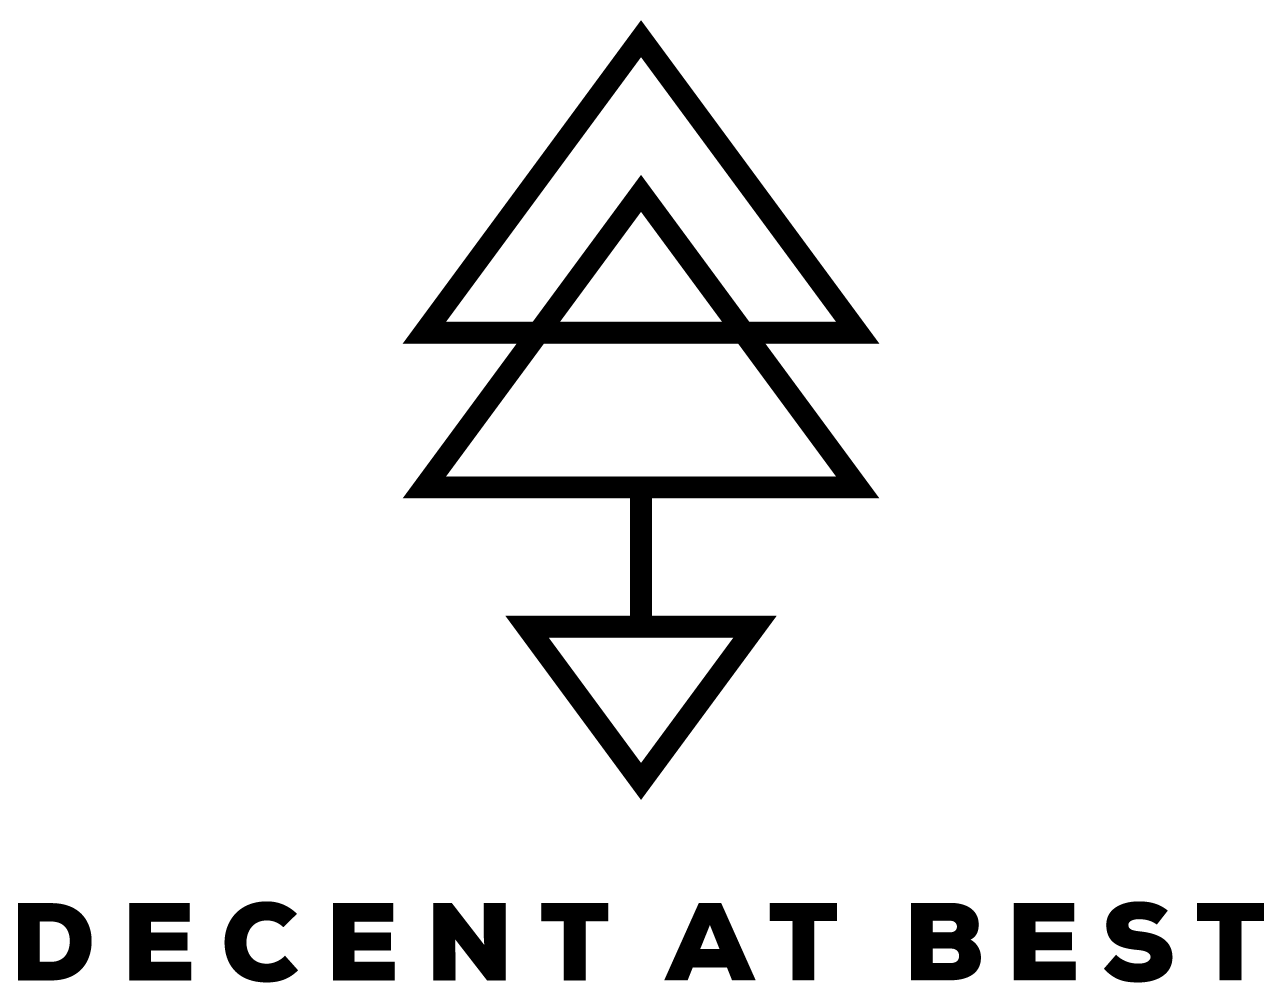 Decent-At-Best-Seattle-Music-Band-Logo-Black.png